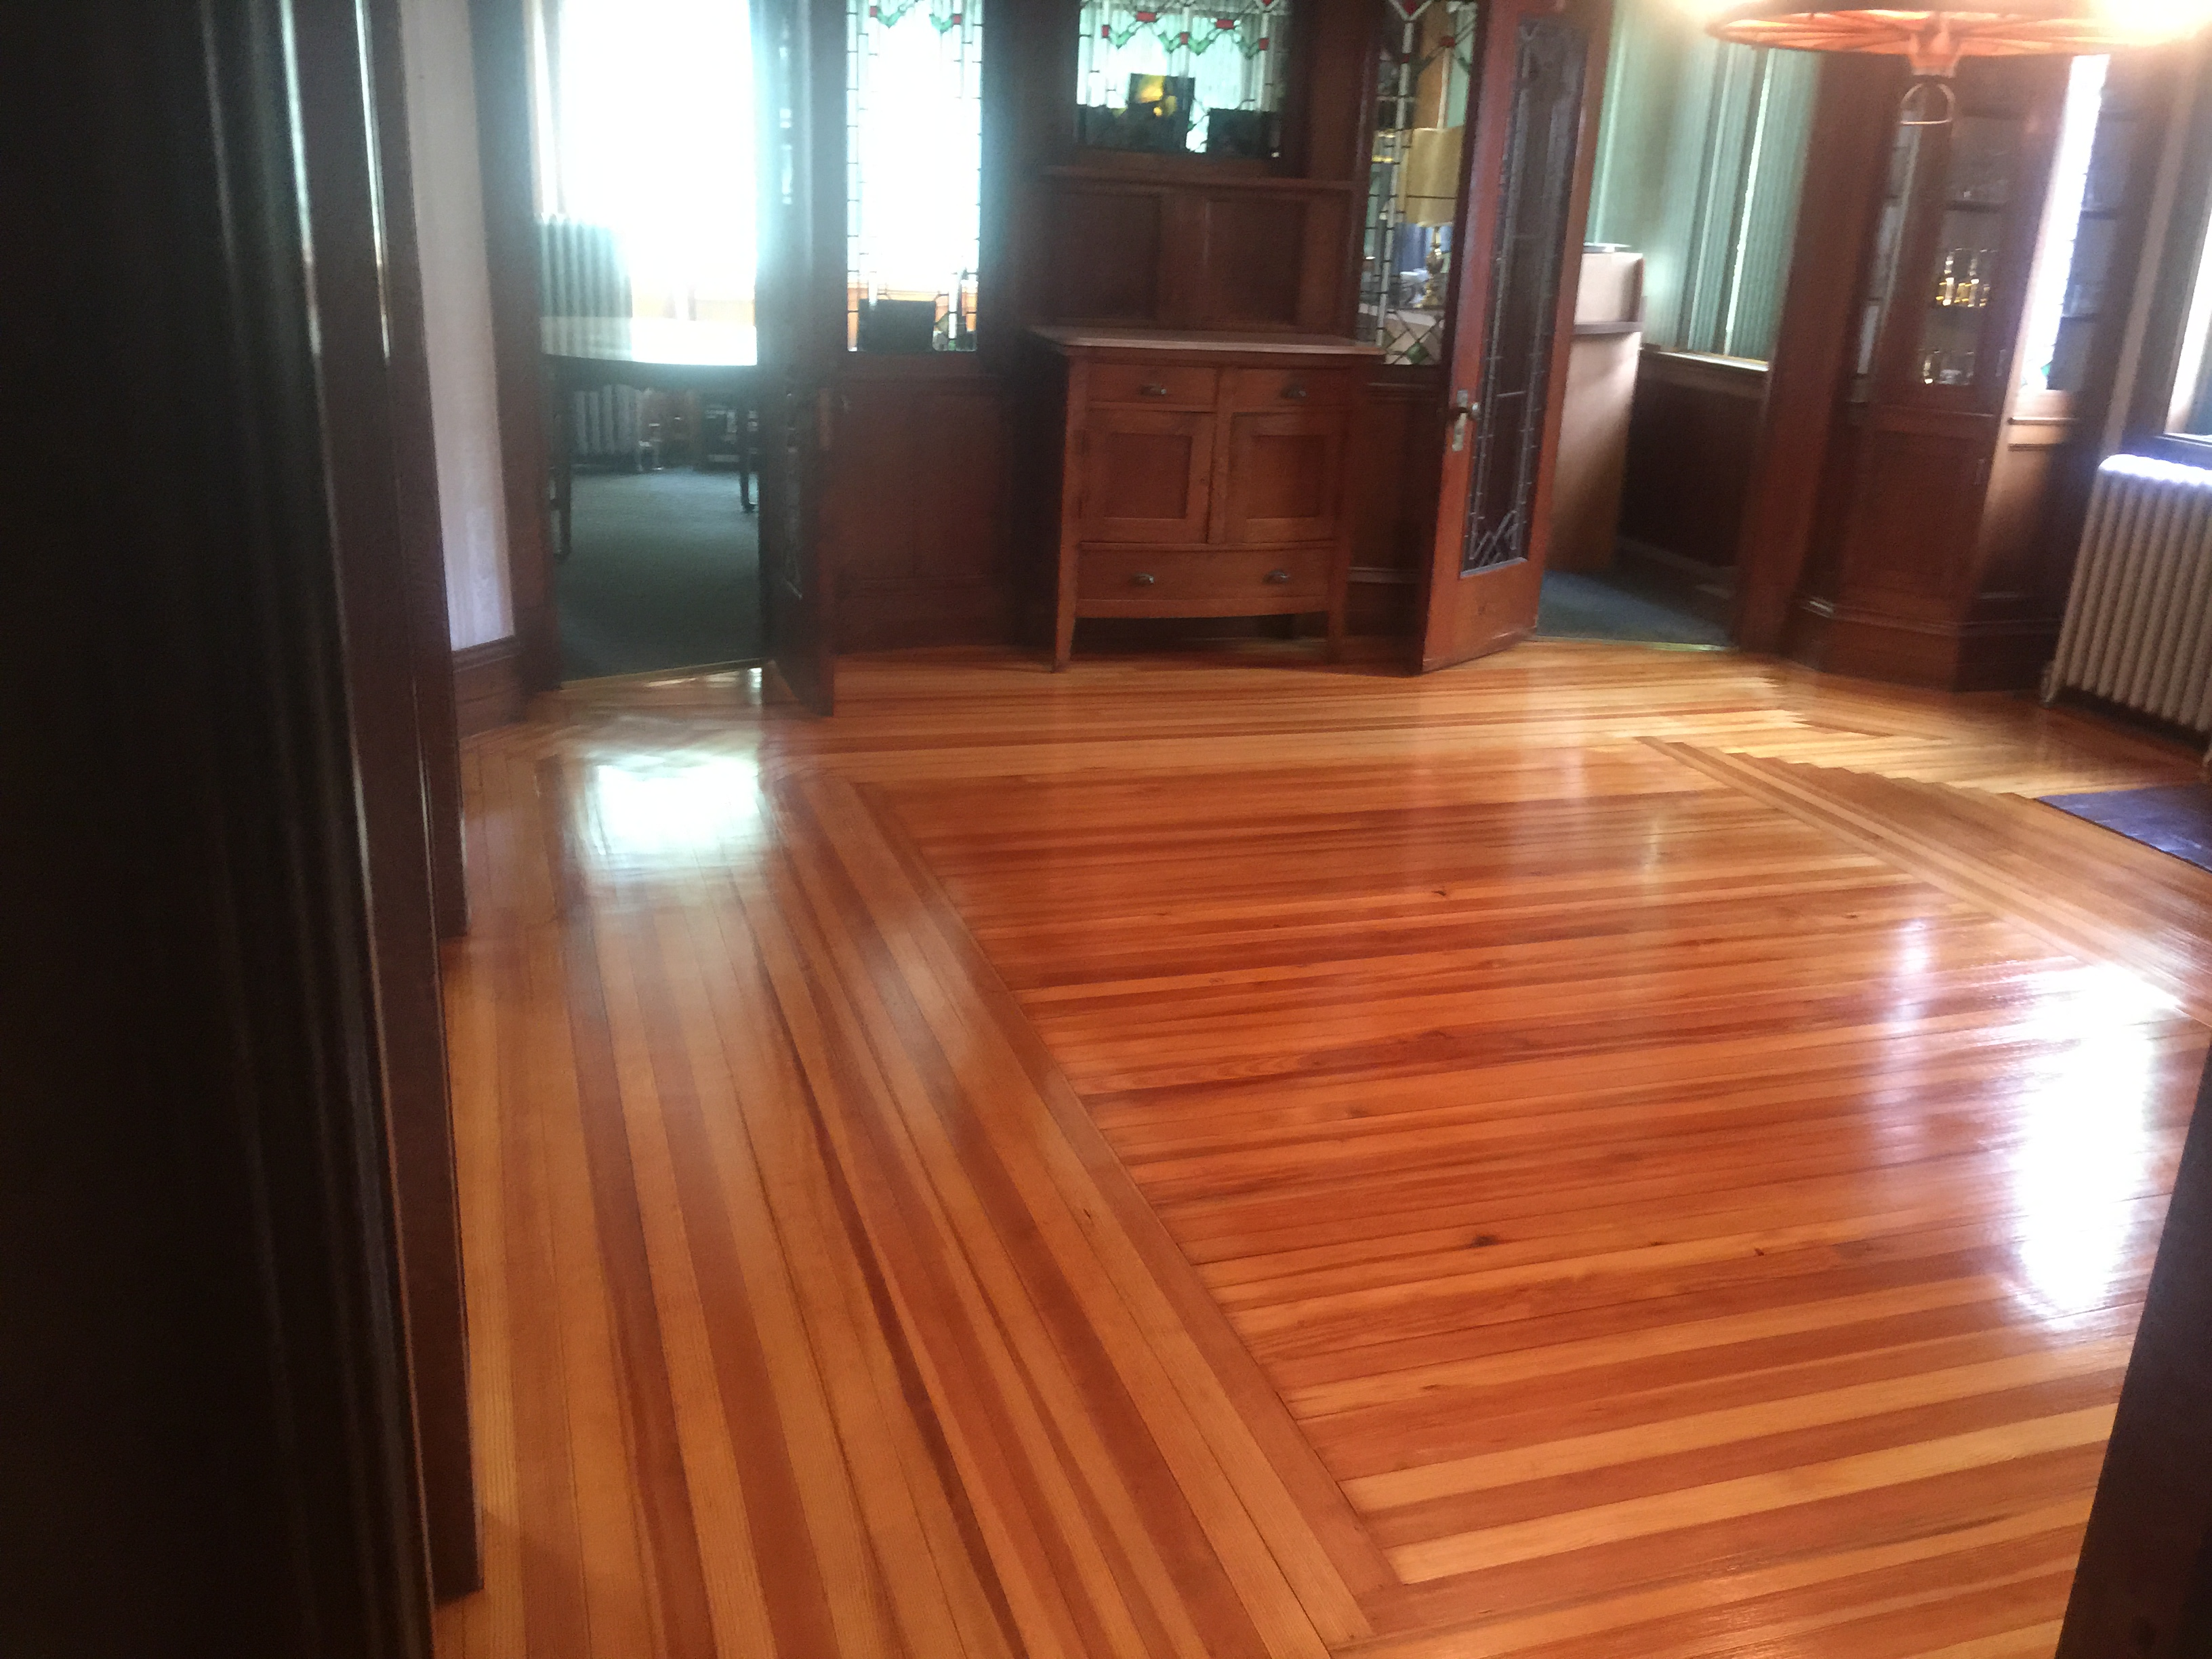 Lehigh valley hardwood flooring inc in allentown pa for Hardwood flooring inc